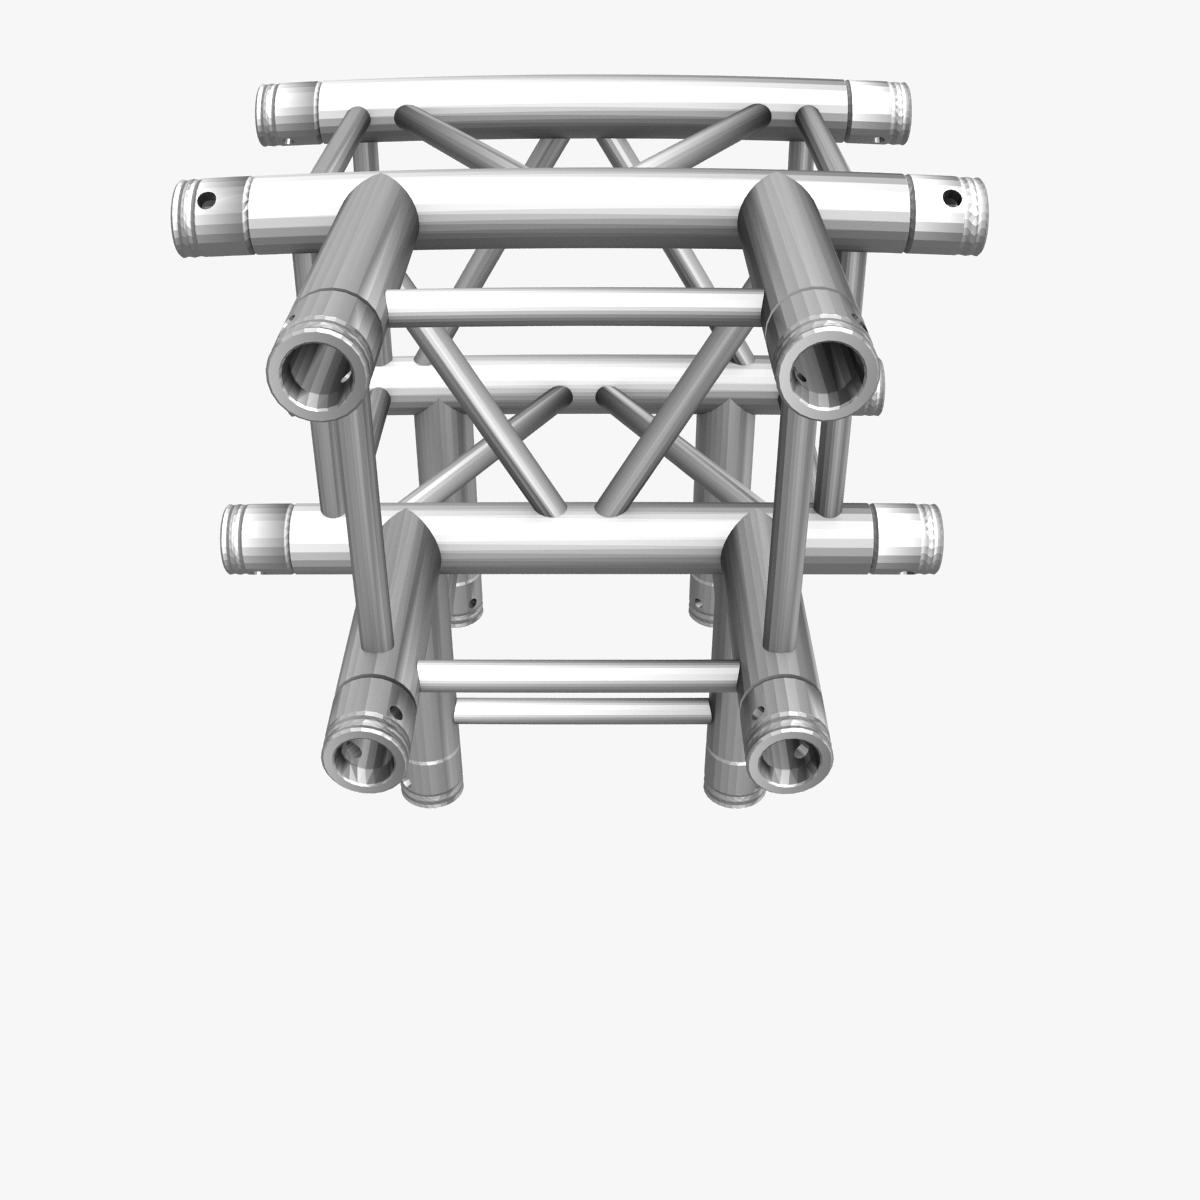 square truss standard (collection 24 modular) 3d model 3ds max dxf fbx c4d dae  texture obj 216346